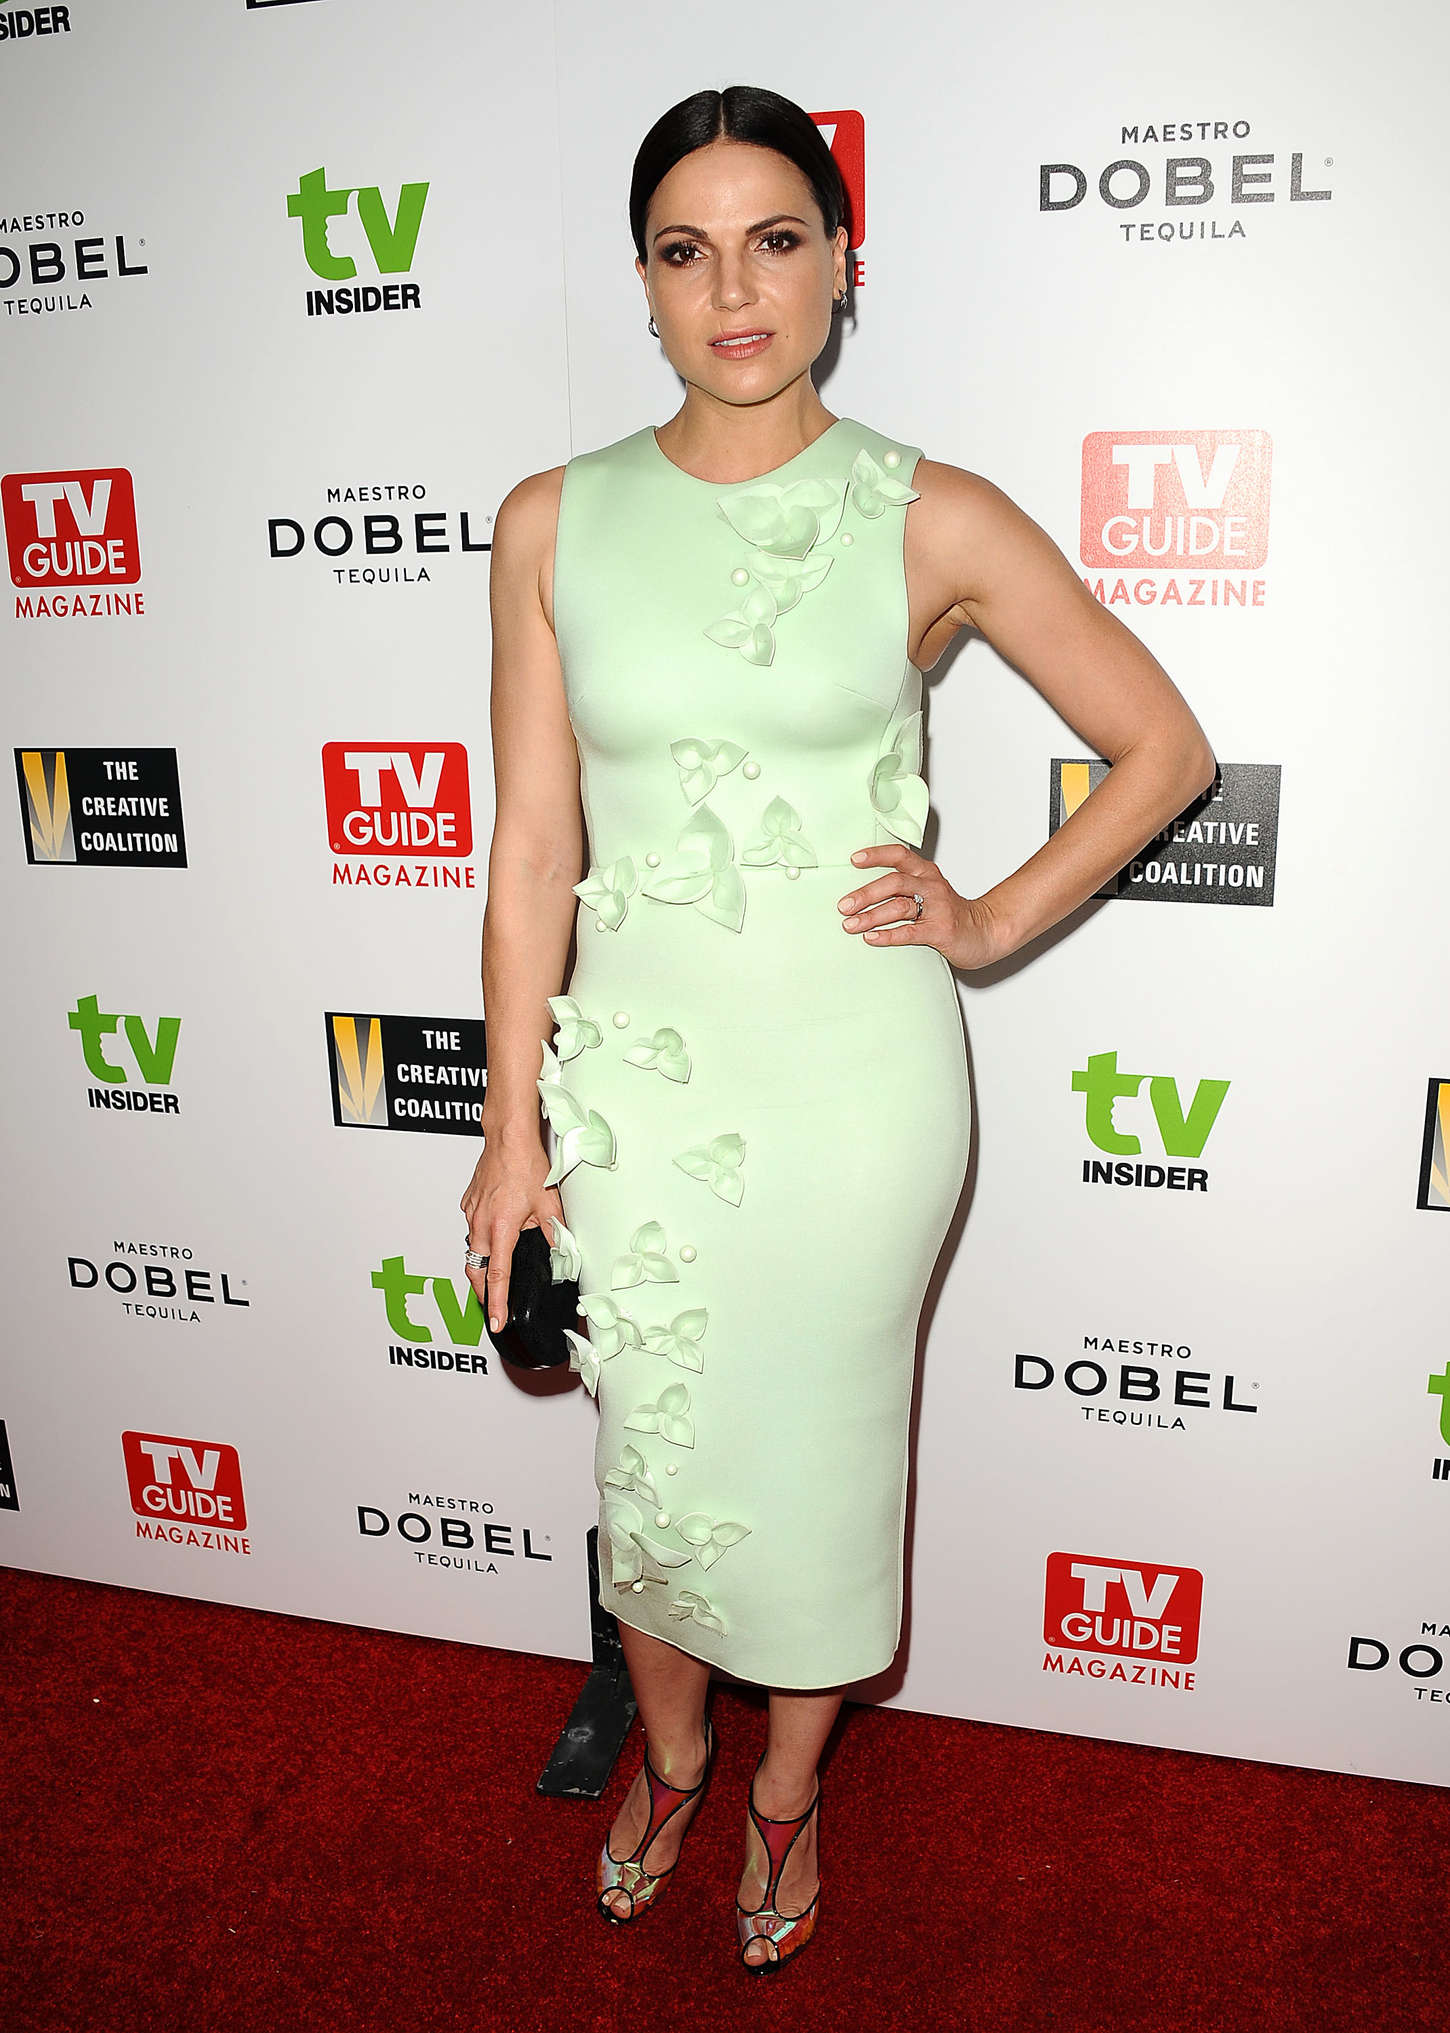 Lana Parrilla Television Industry Advocacy Awards in West Hollywood